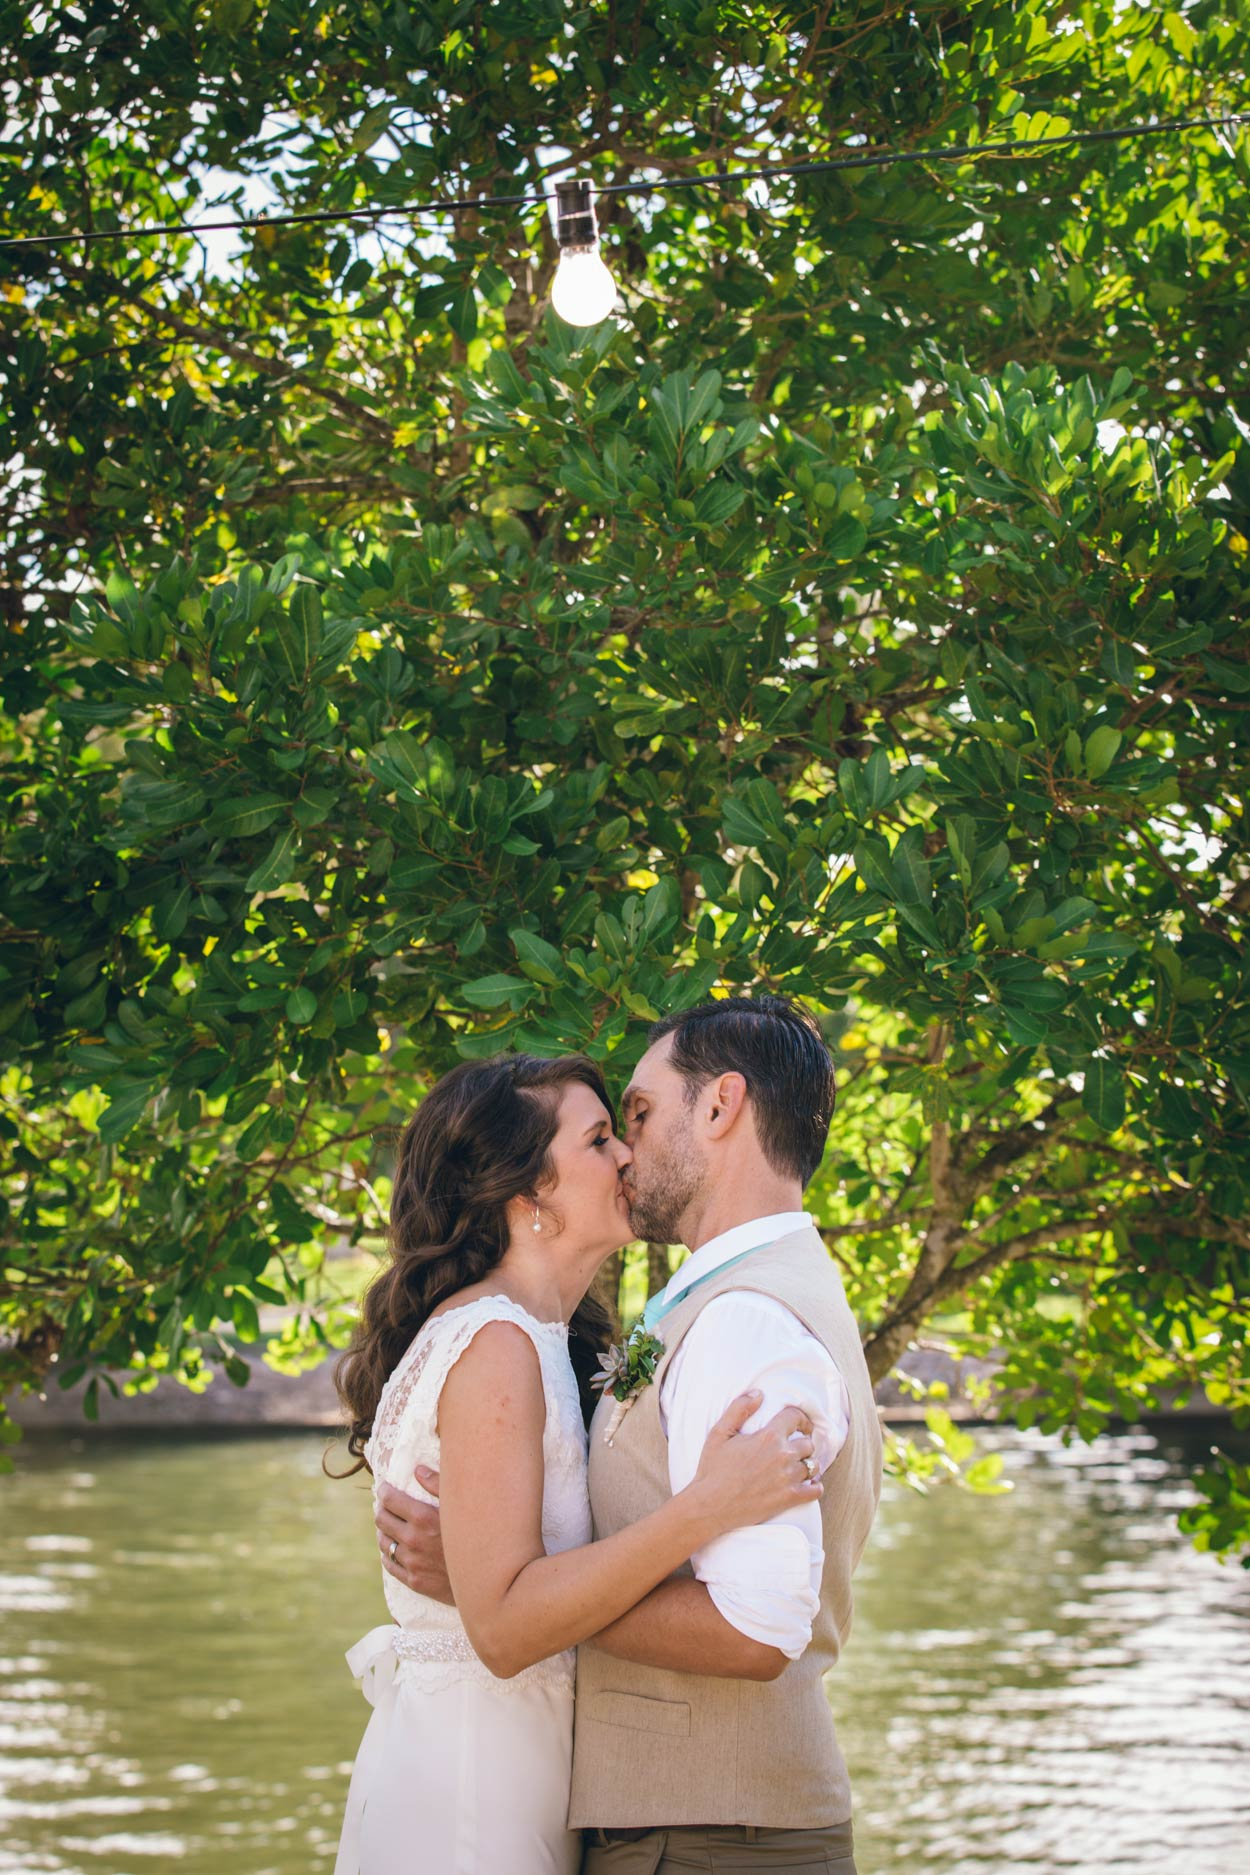 River Wedding Kiss, Noosa Waterfront Restaurant - Sunshine Coast, Brisbane, Australian Pre Photographers